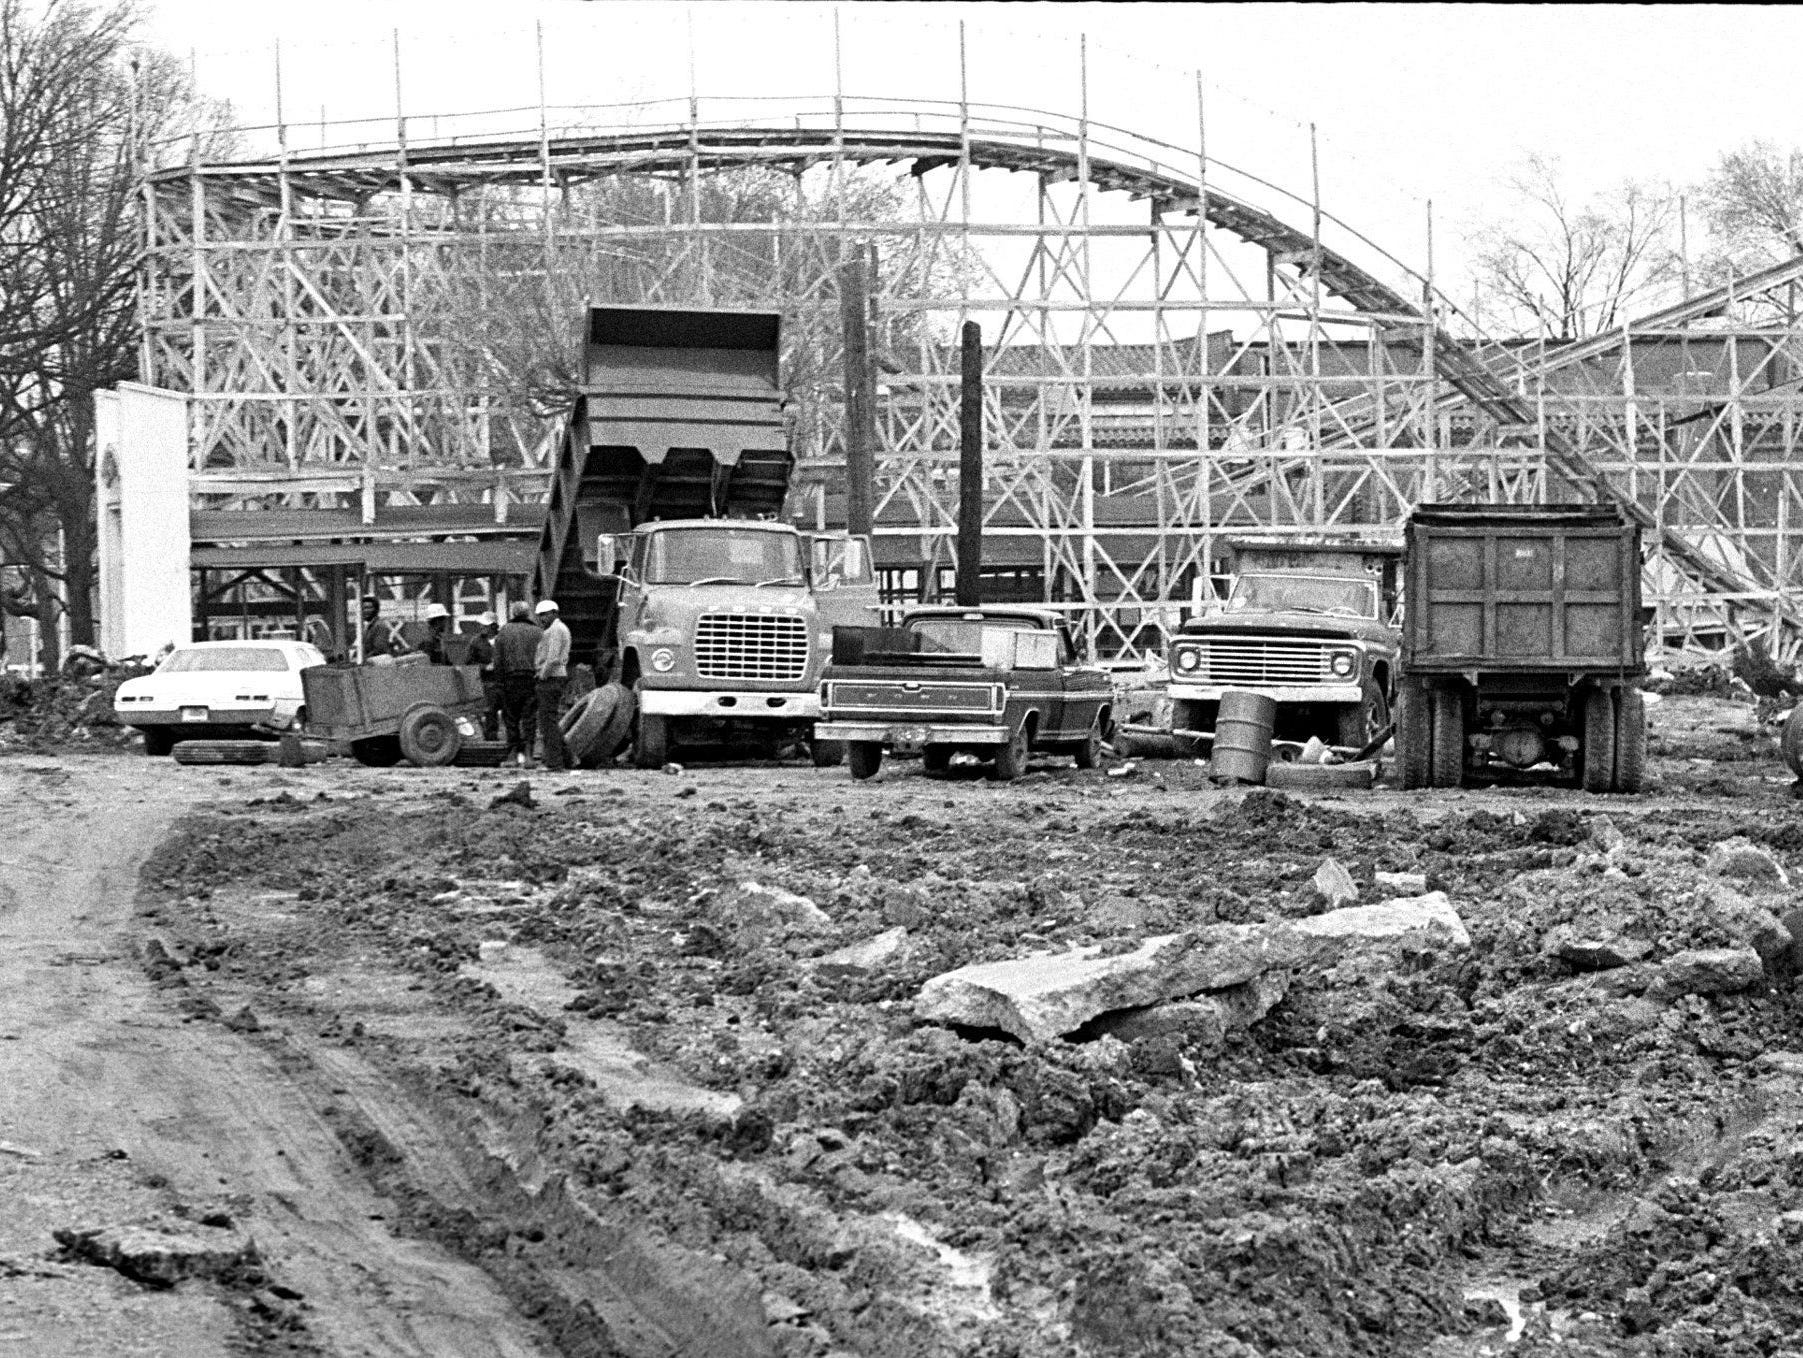 The Zippin Pippin is about all that remains of the old Fairgrounds Amusement Park as demolition continues in February 1975 to make way the for Libertyland.